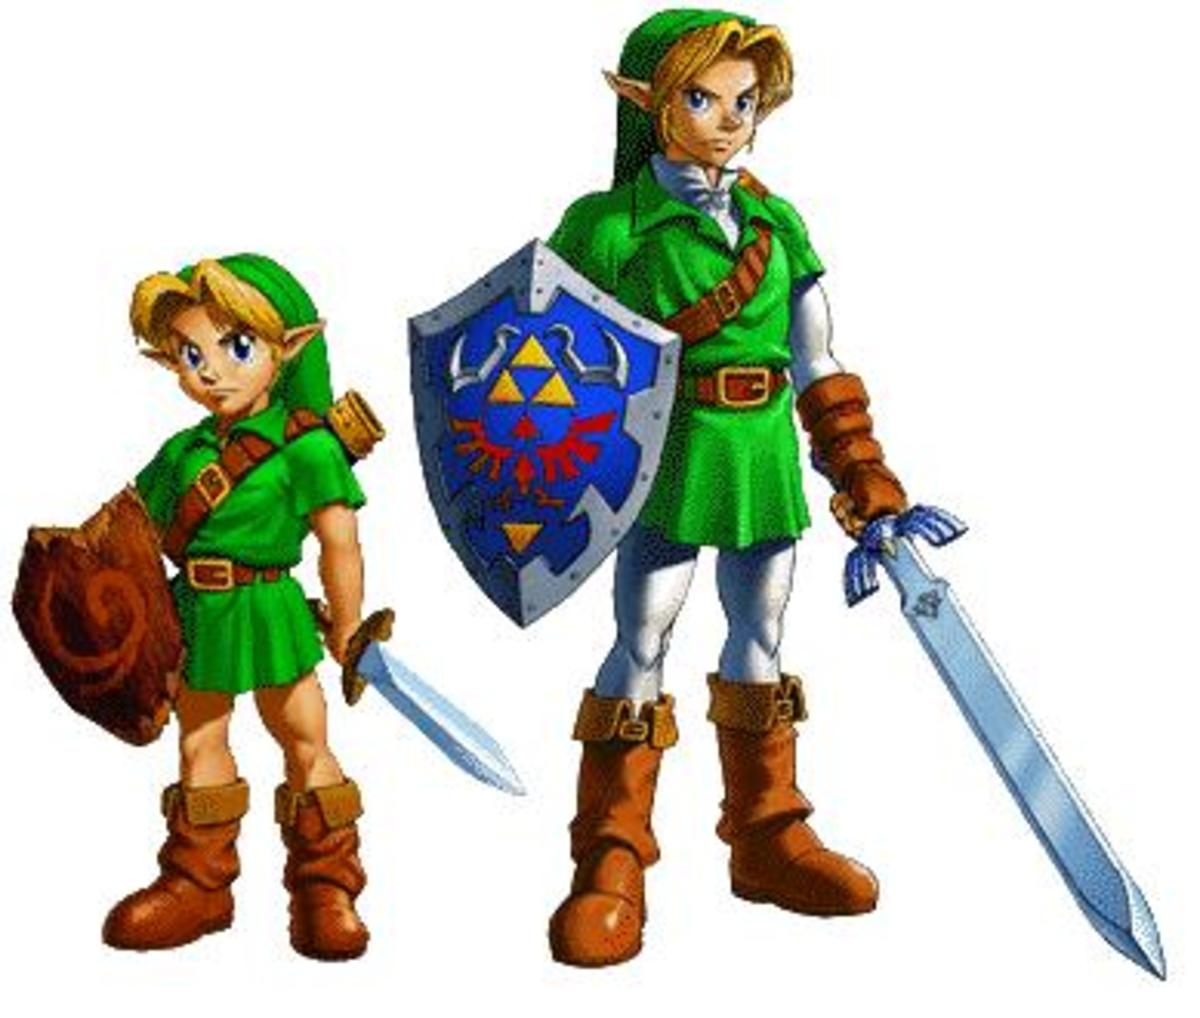 """The child and adult versions of Link from """"Ocarina of Time."""" The child version appears again in """"Majora's Mask."""""""